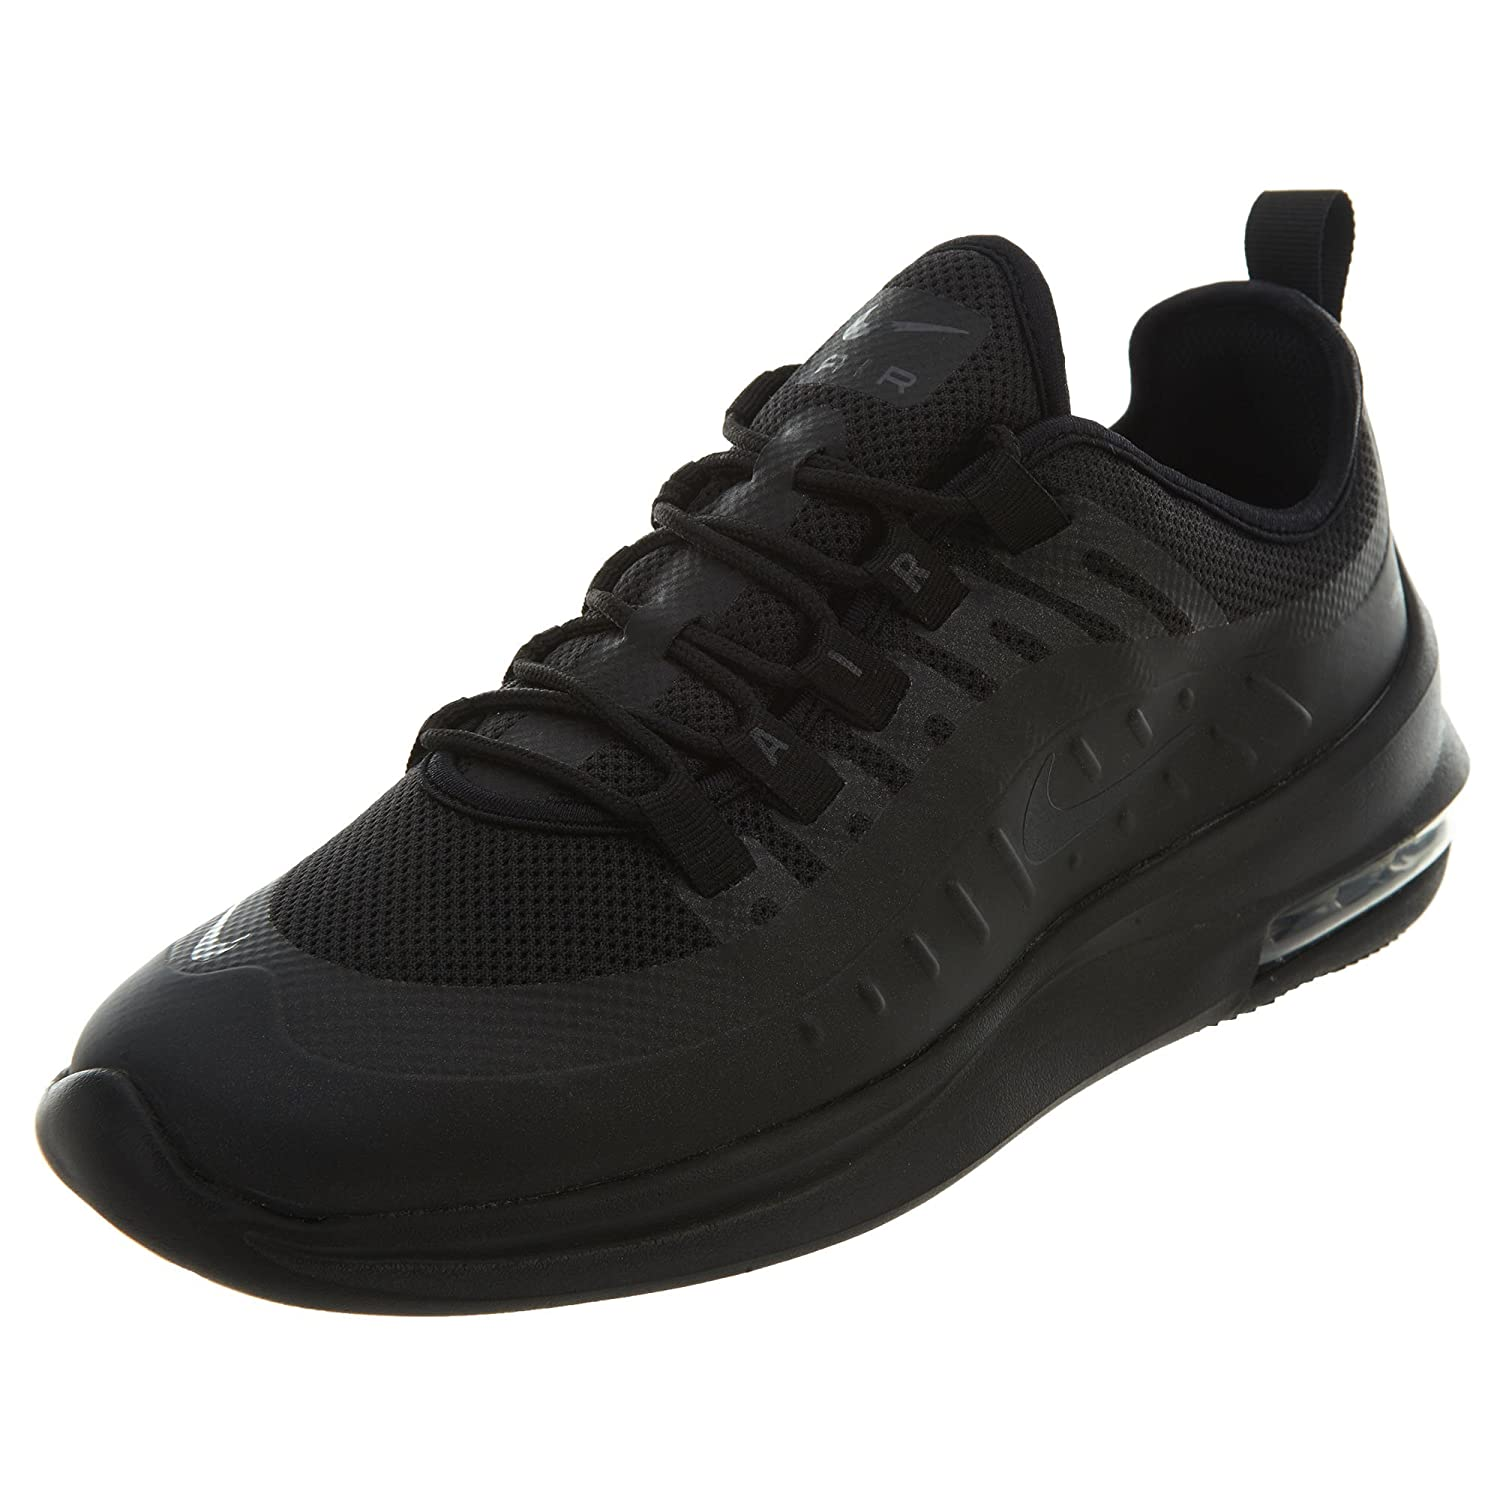 de04945786 Amazon.com | Nike Air Max Axis Mens Style: AA2146-006 Size: 9.5 Black/Anthracite  | Road Running